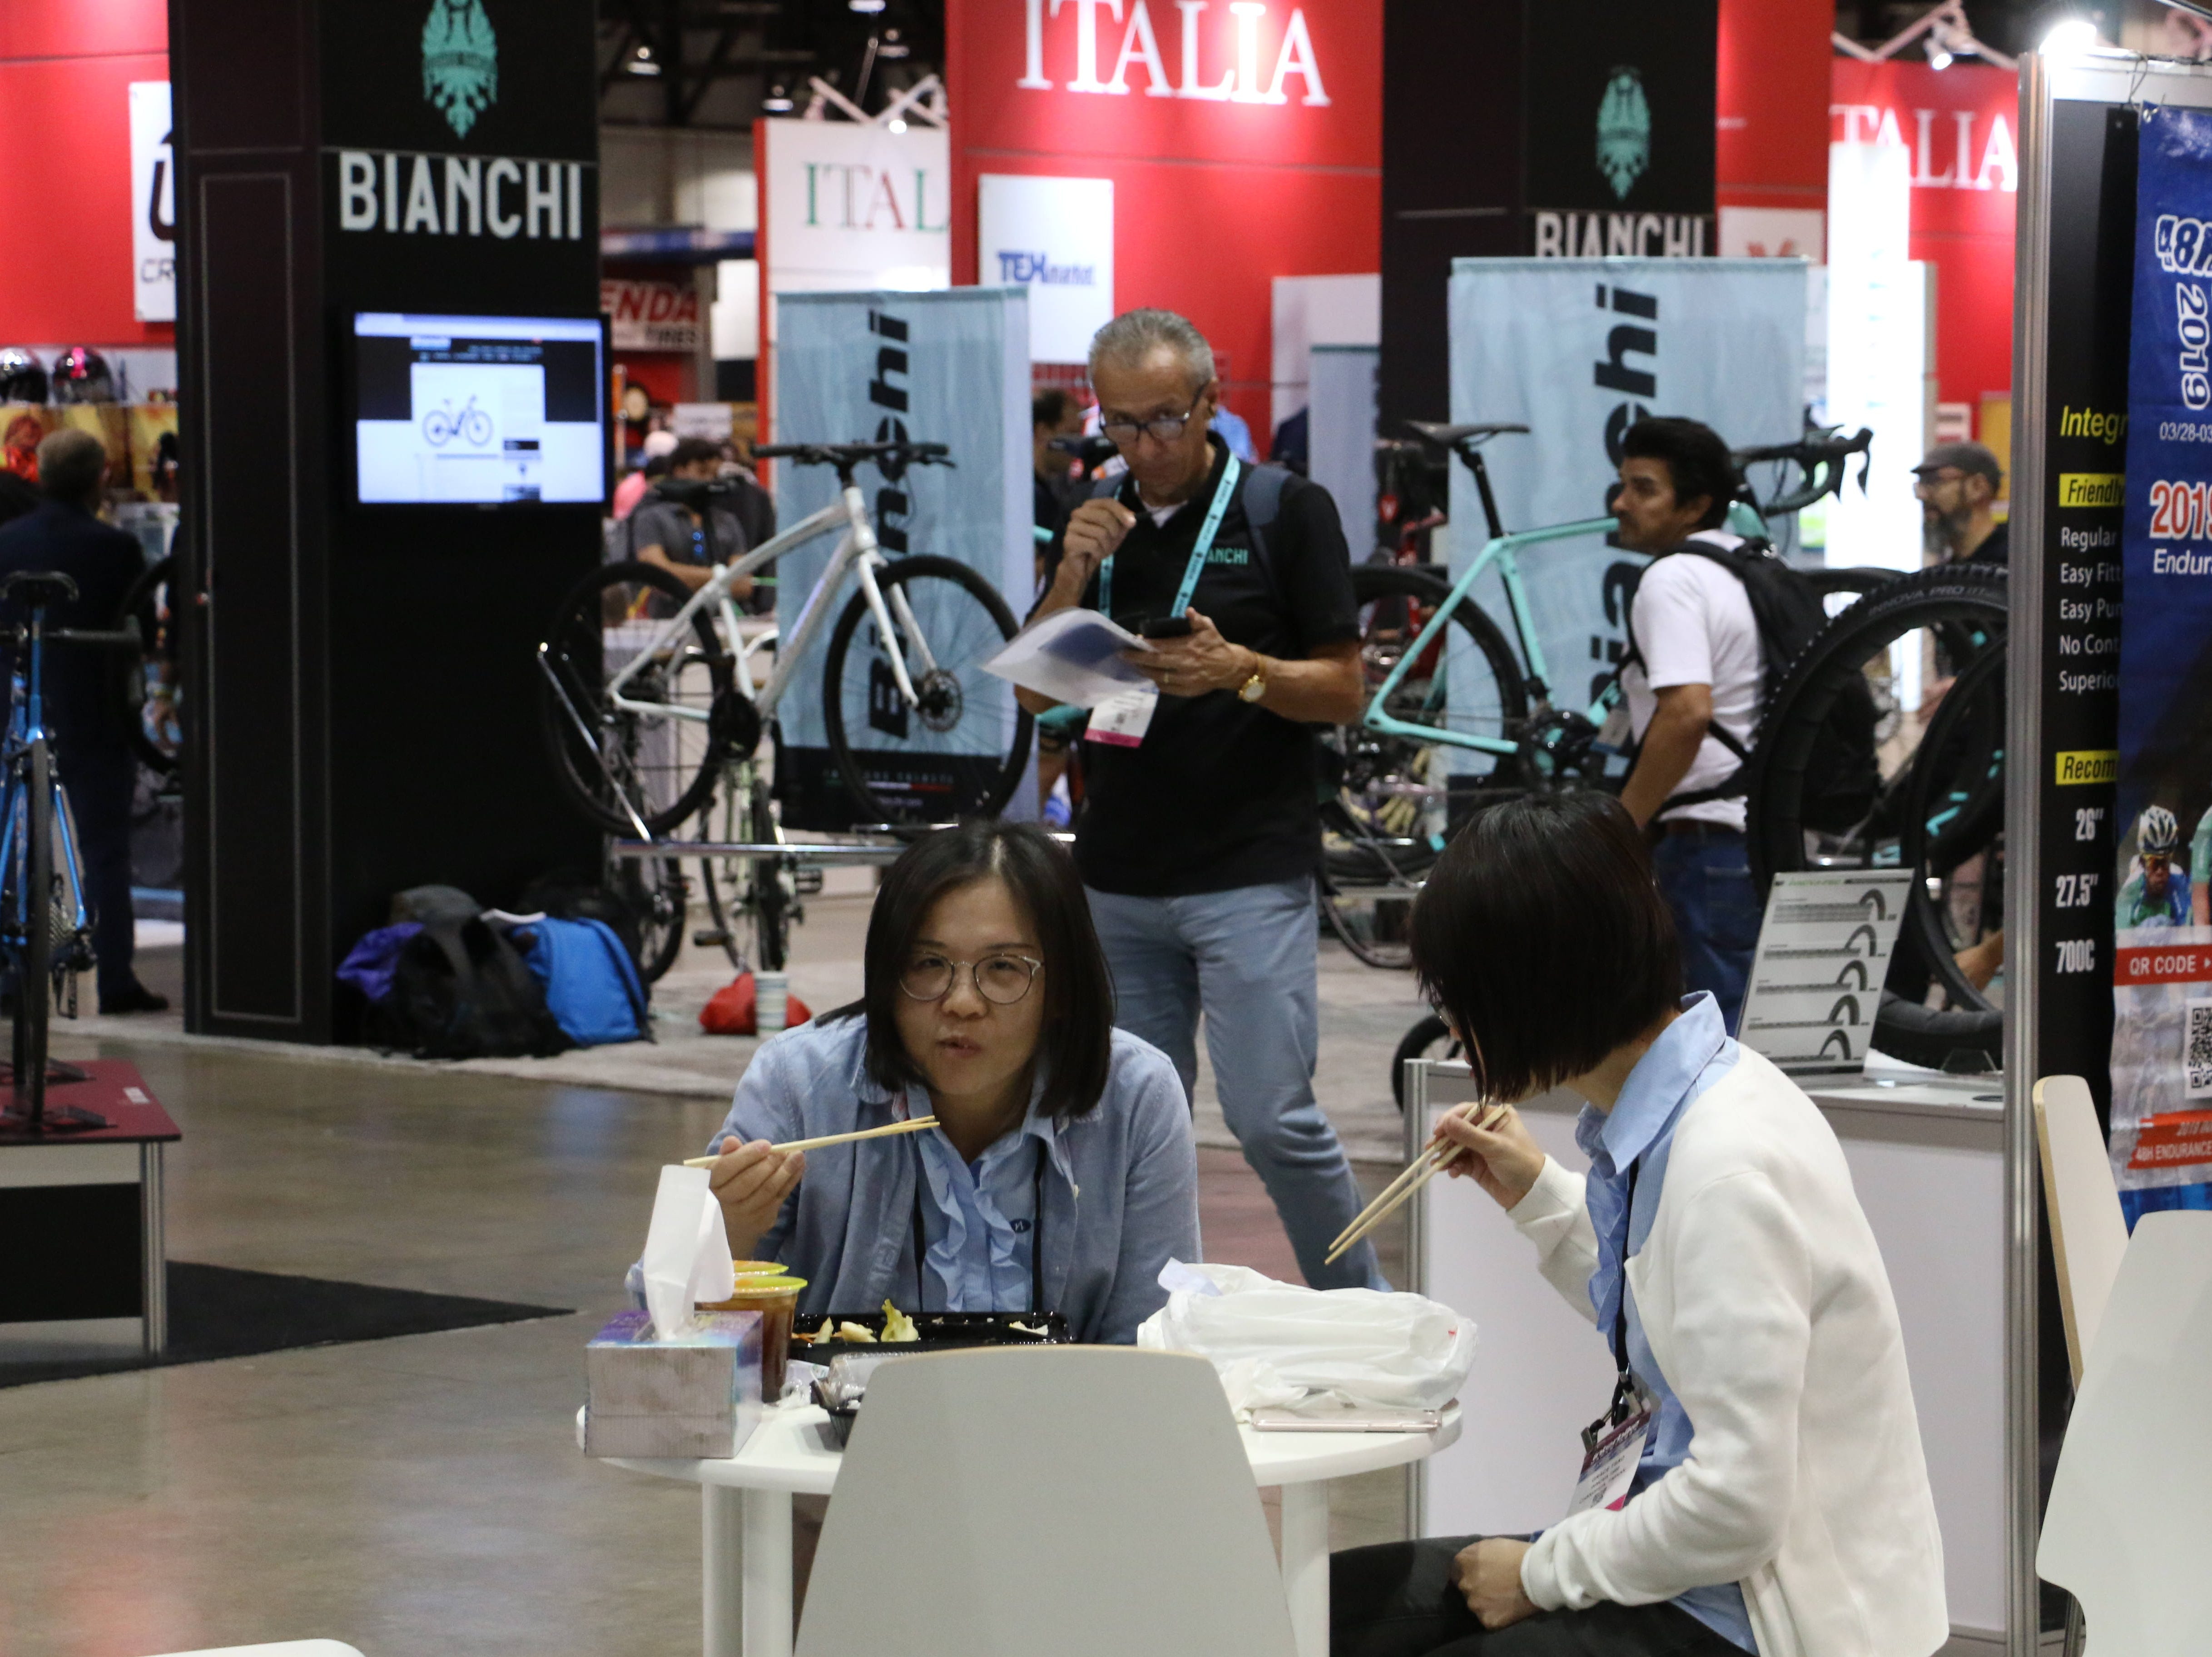 The Interbike Expo at the Reno-Sparks Convention Center in Reno on Sept. 19, 2018.